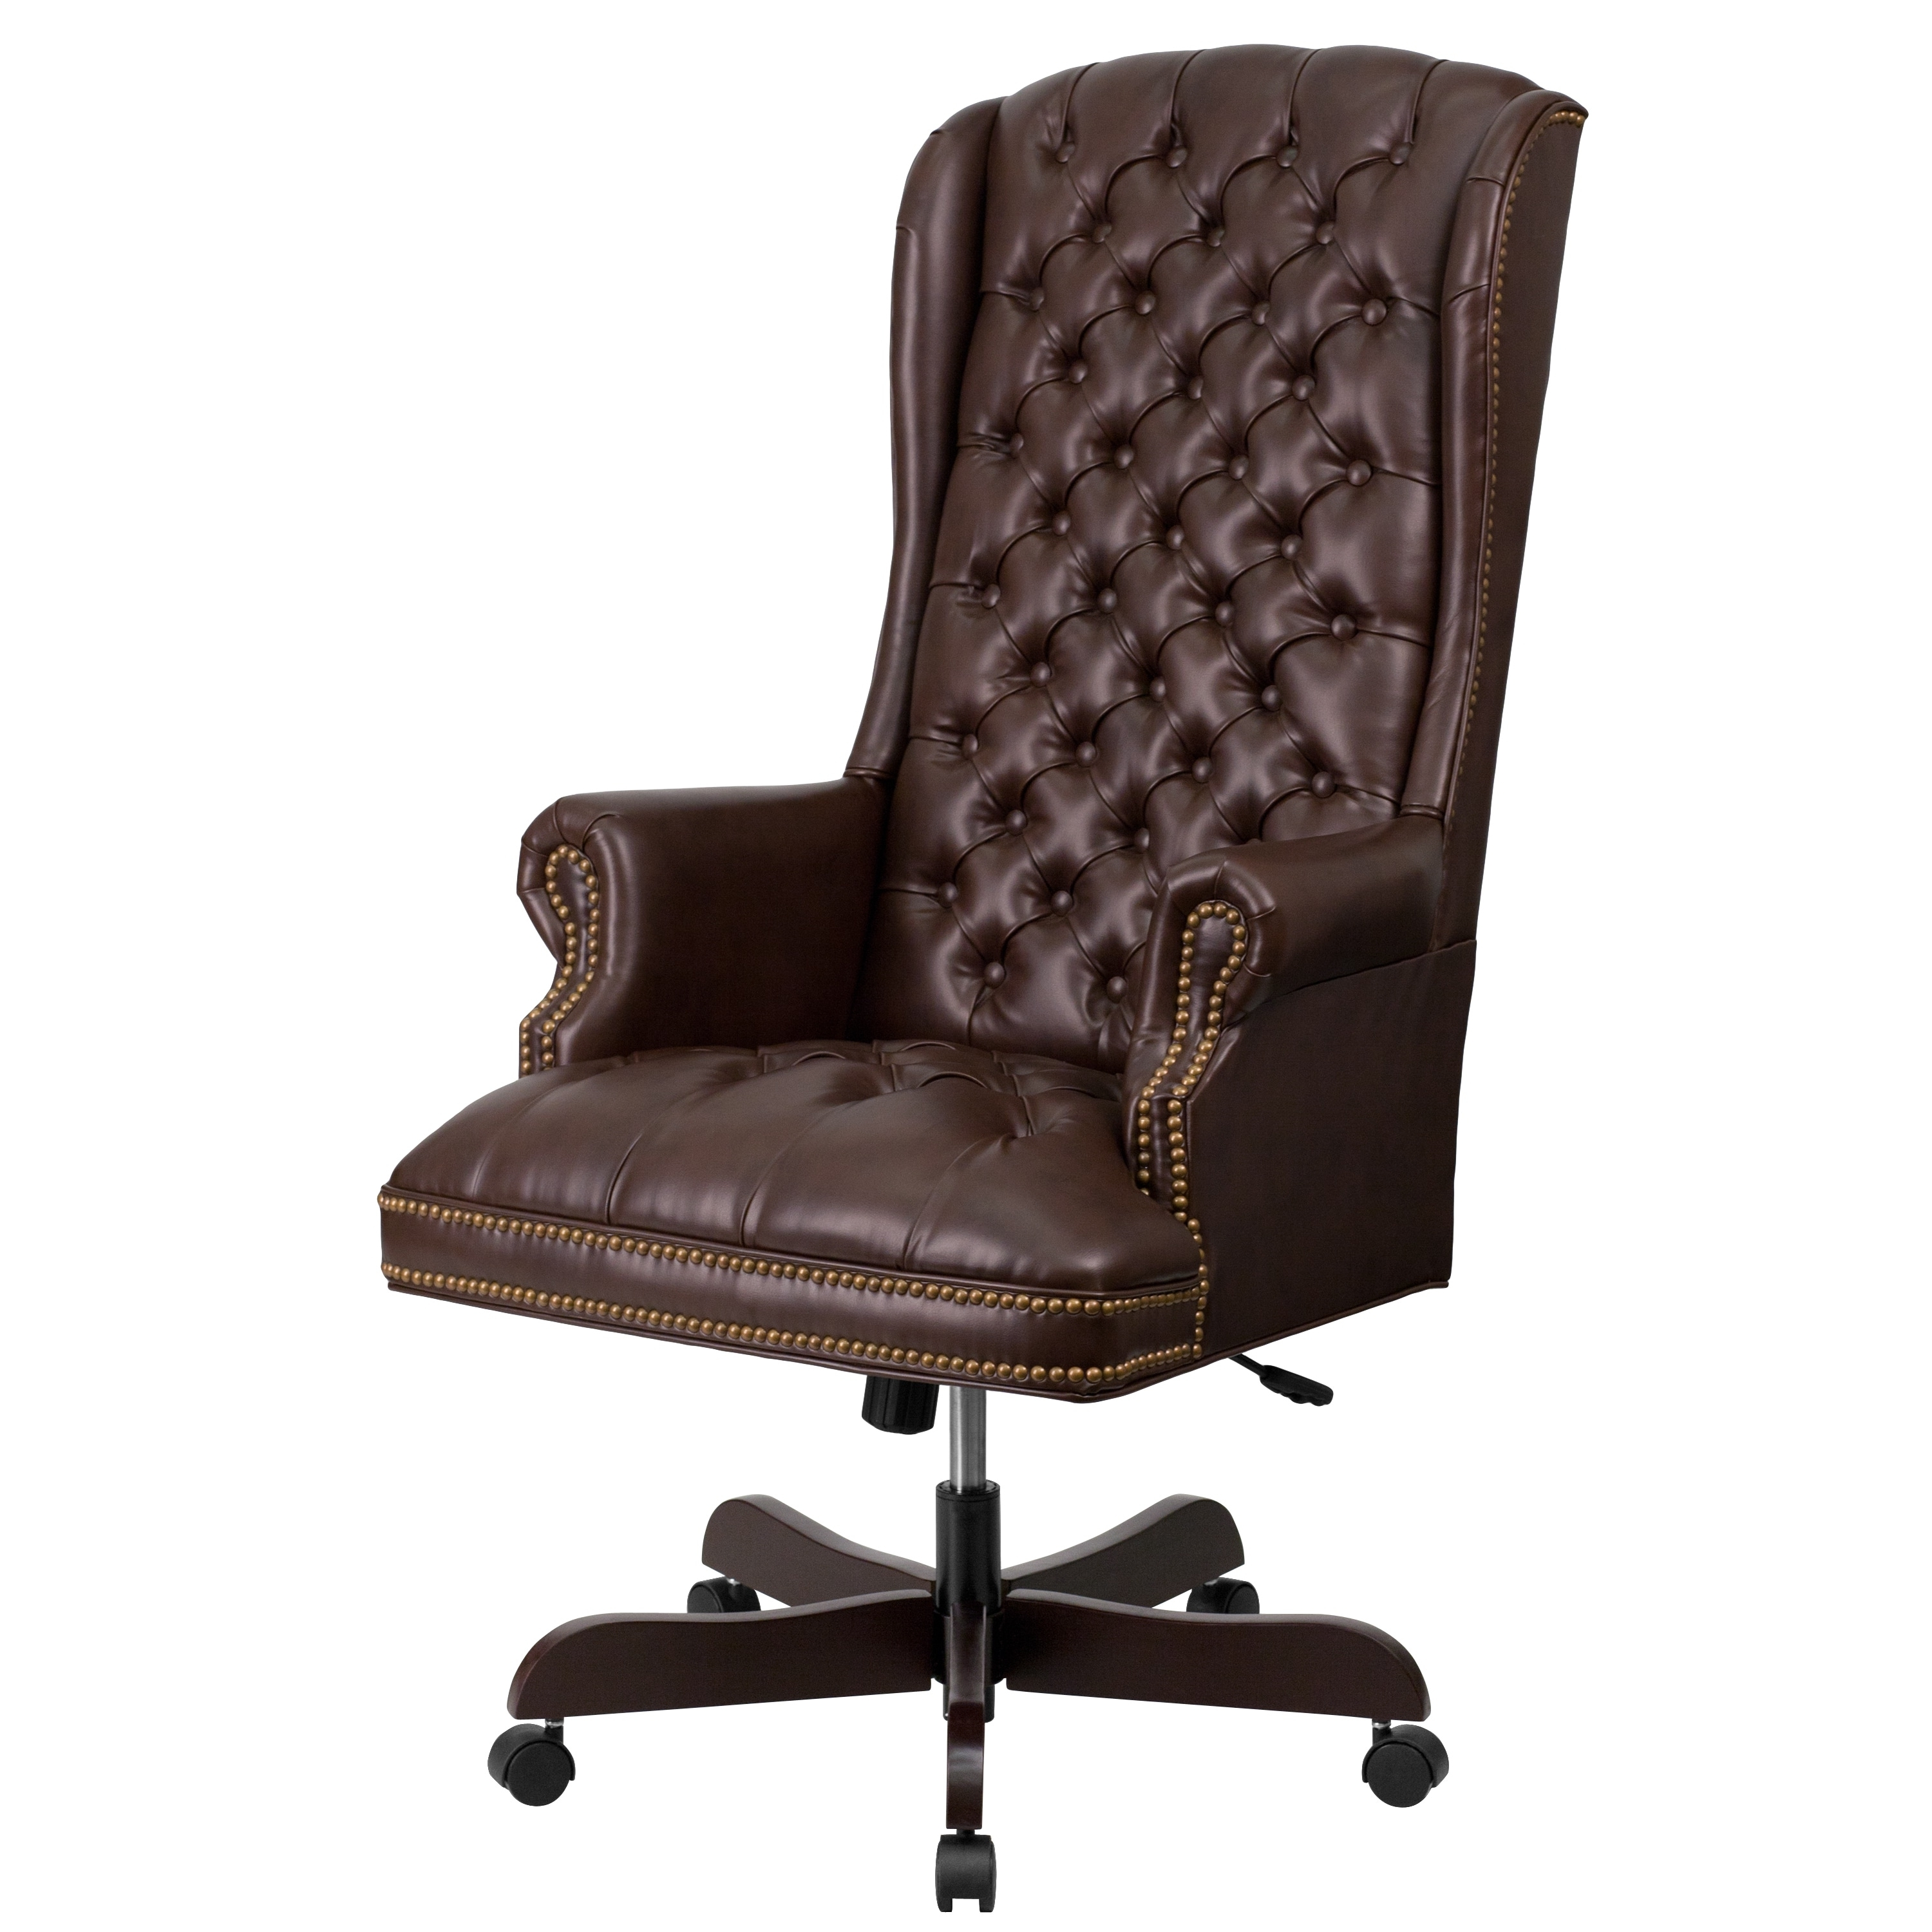 Fashionable Light Beige Microfiber Executive Office Chairs Inside Brown Office & Conference Room Chairs For Less (View 17 of 20)